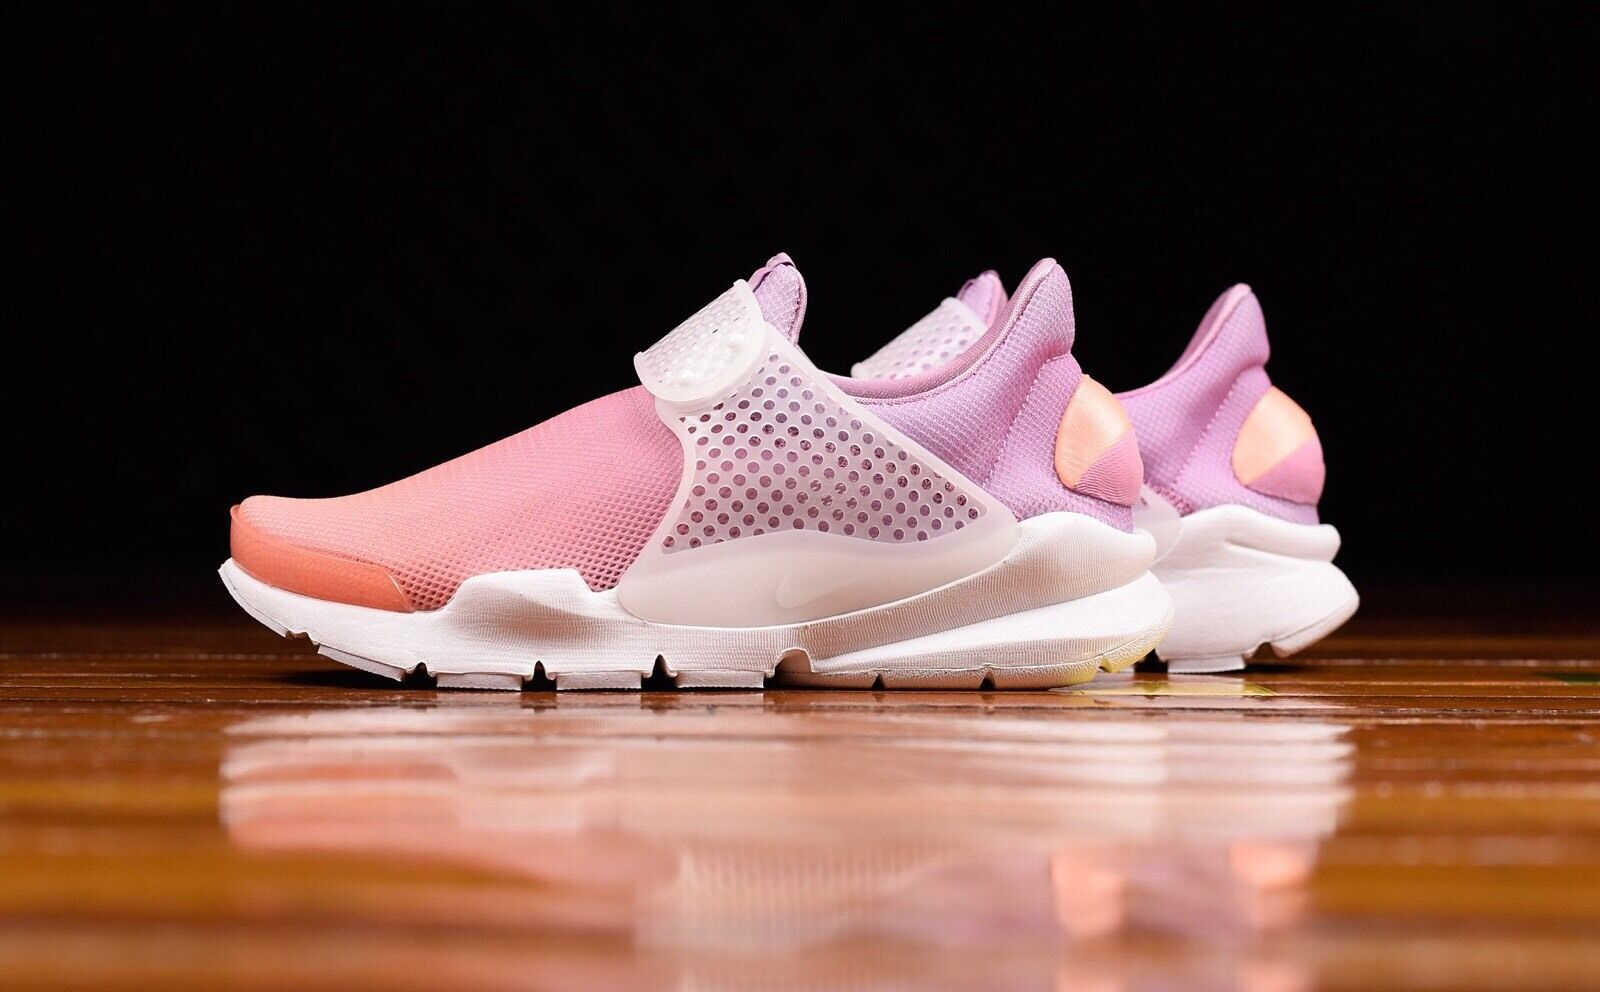 NIKE SOCK DART BR Price reduction Price reduction Seasonal price cuts, discount benefits